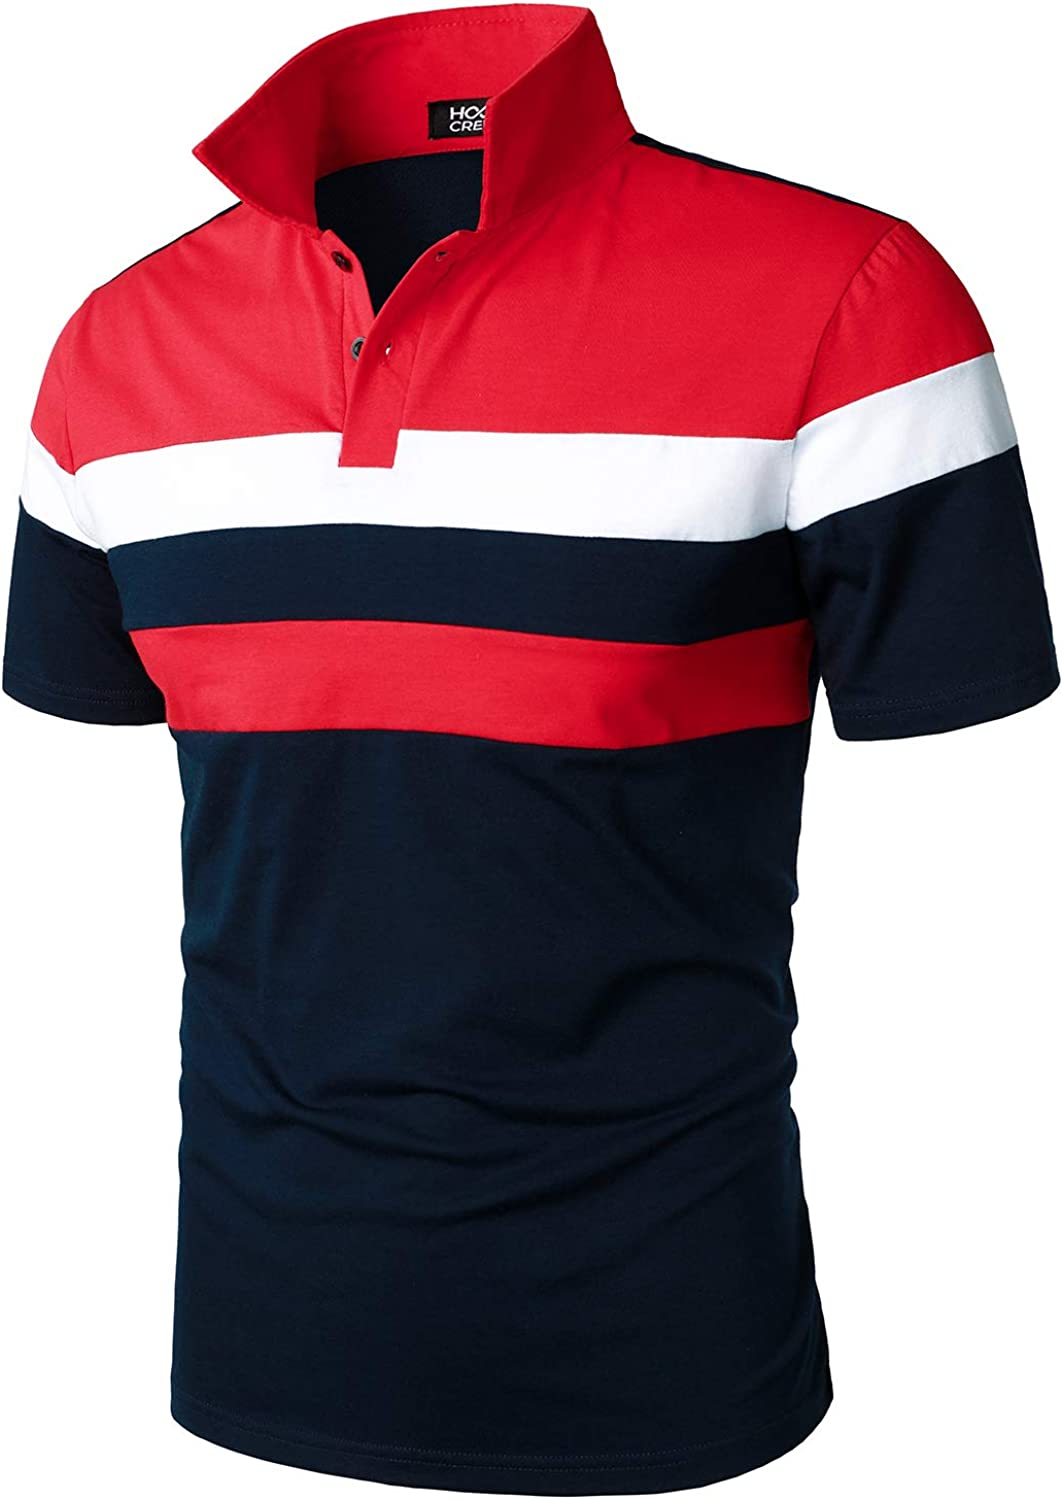 HOOD Very popular! CREW Men's Casual Short Sleeve Polo Quality inspection Co Fit Shirts Slim